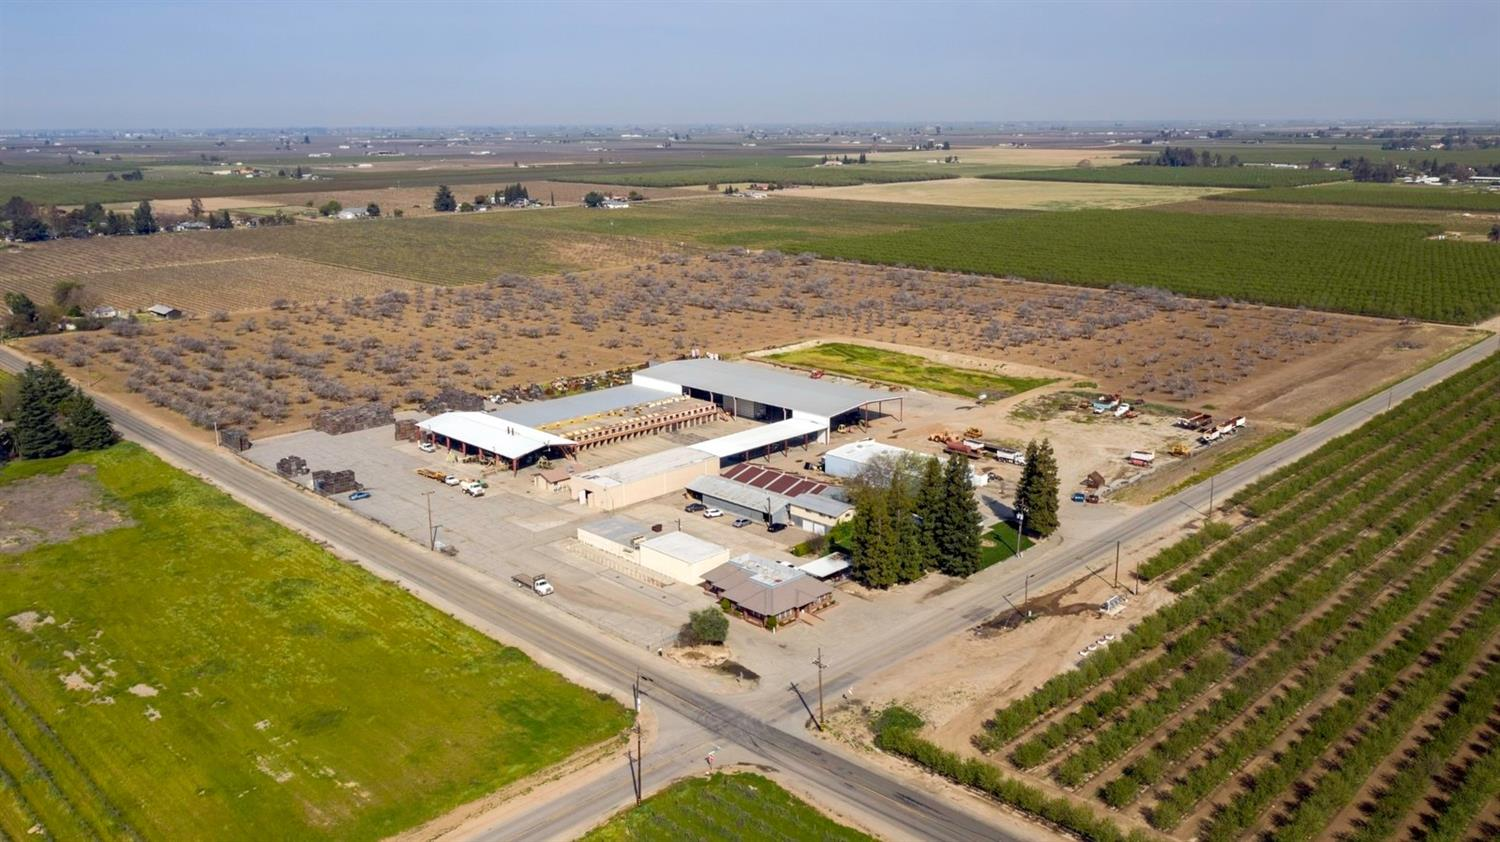 Farms and Ranches for sale in Fresno, California, 520099